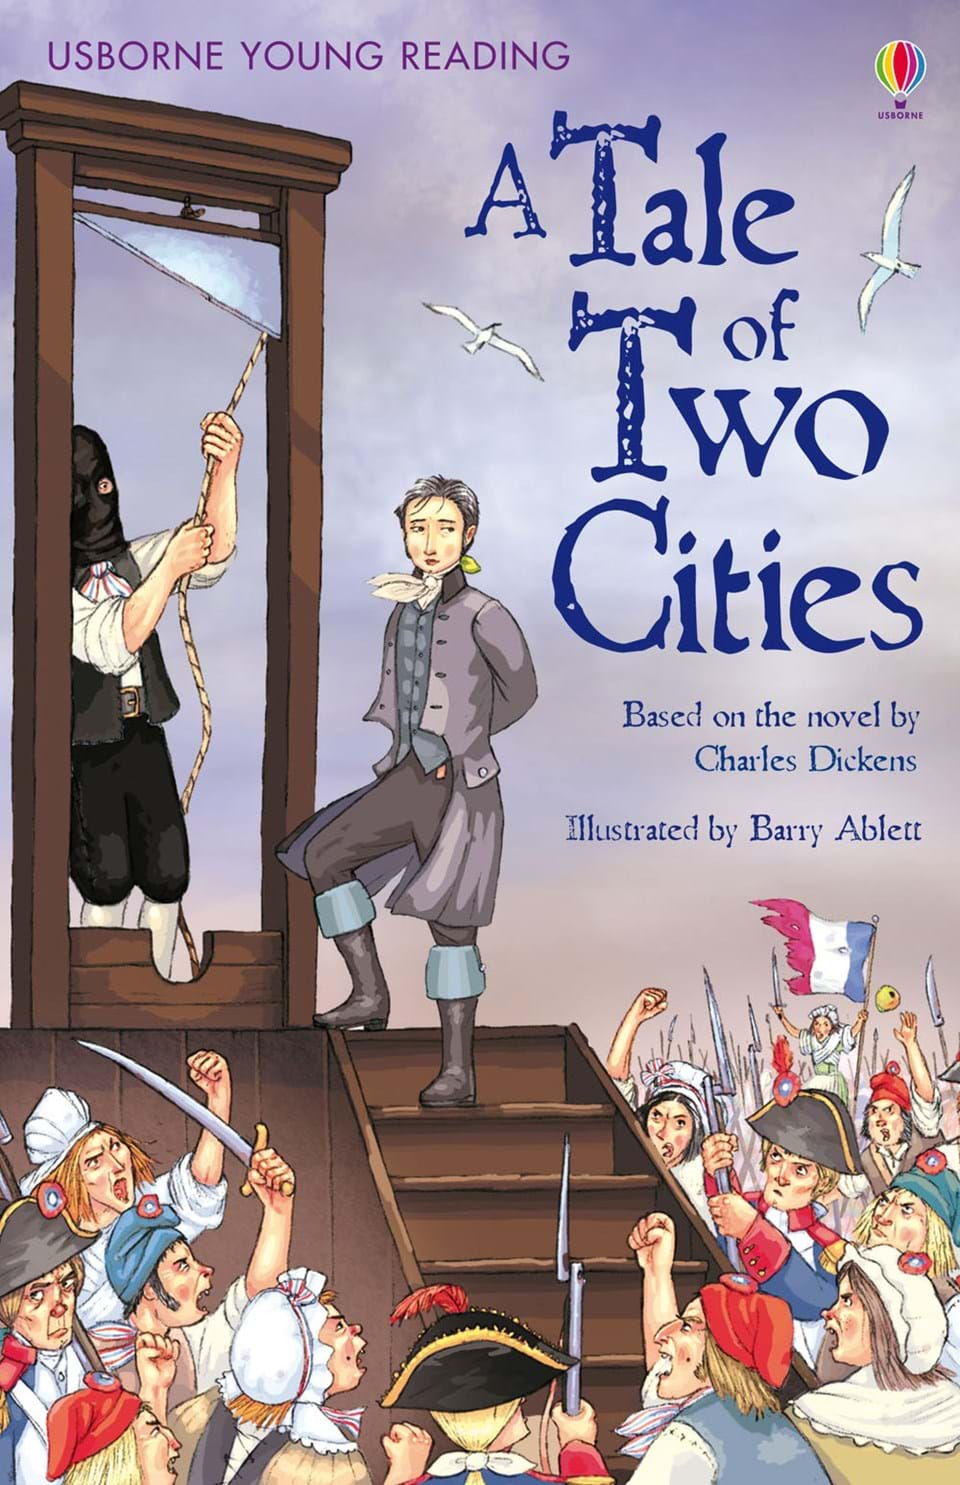 an analysis of the main themes of charles dickens a tale of two cities Home essays critical analysis on a tale he uses the two main cities a tale of two cities, charles dickens made many powerful characters come to life.